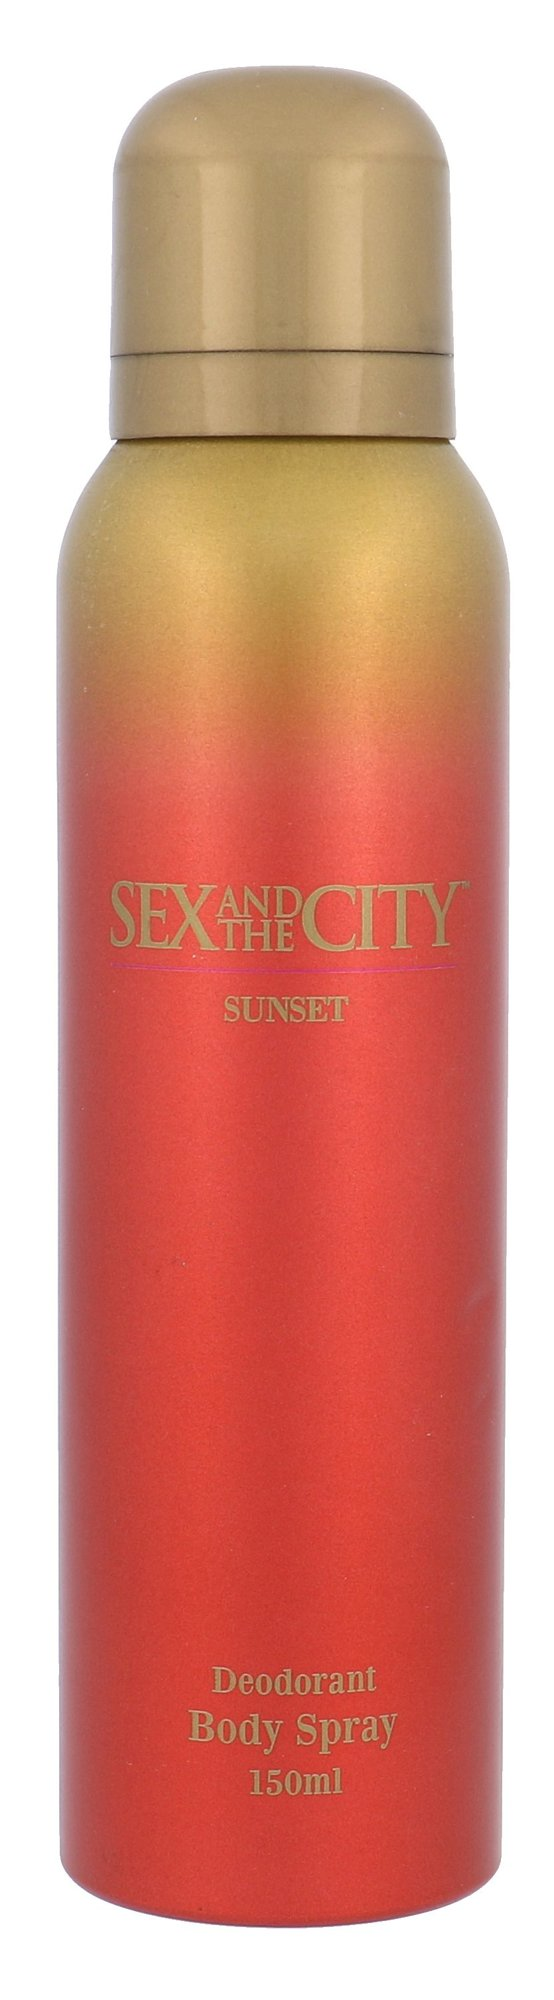 Sex And The City Sunset Deodorant 150ml